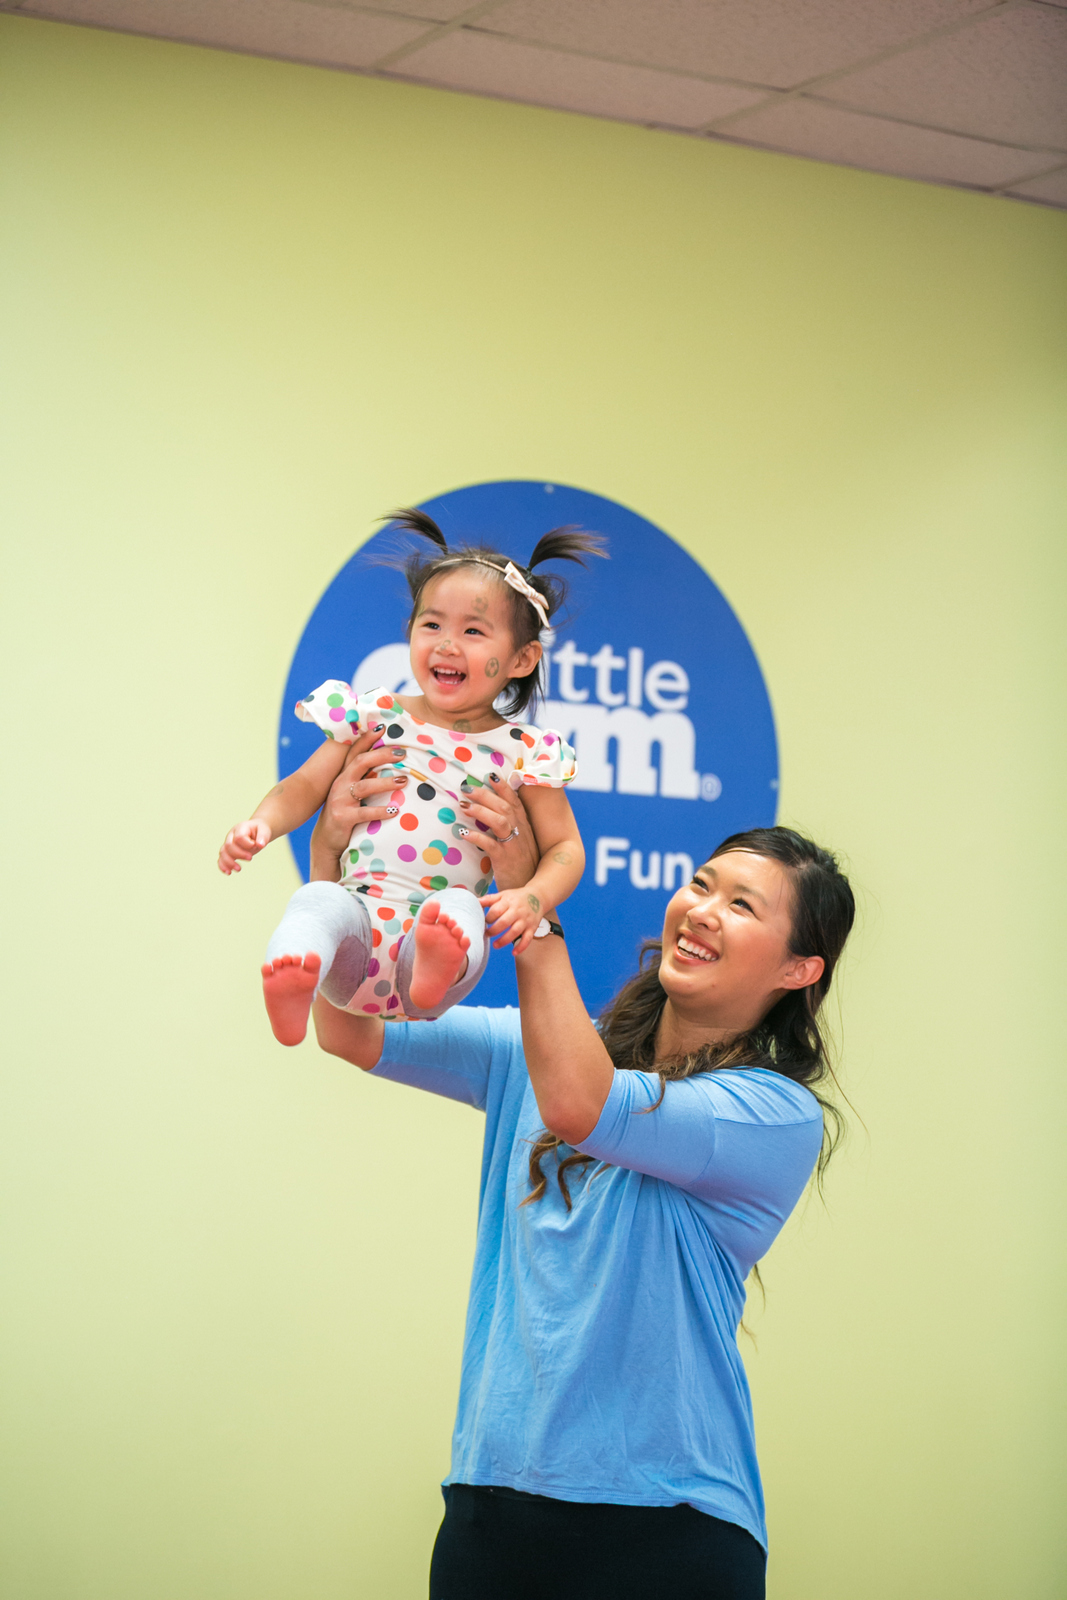 Get your toddler moving at The Little Gym